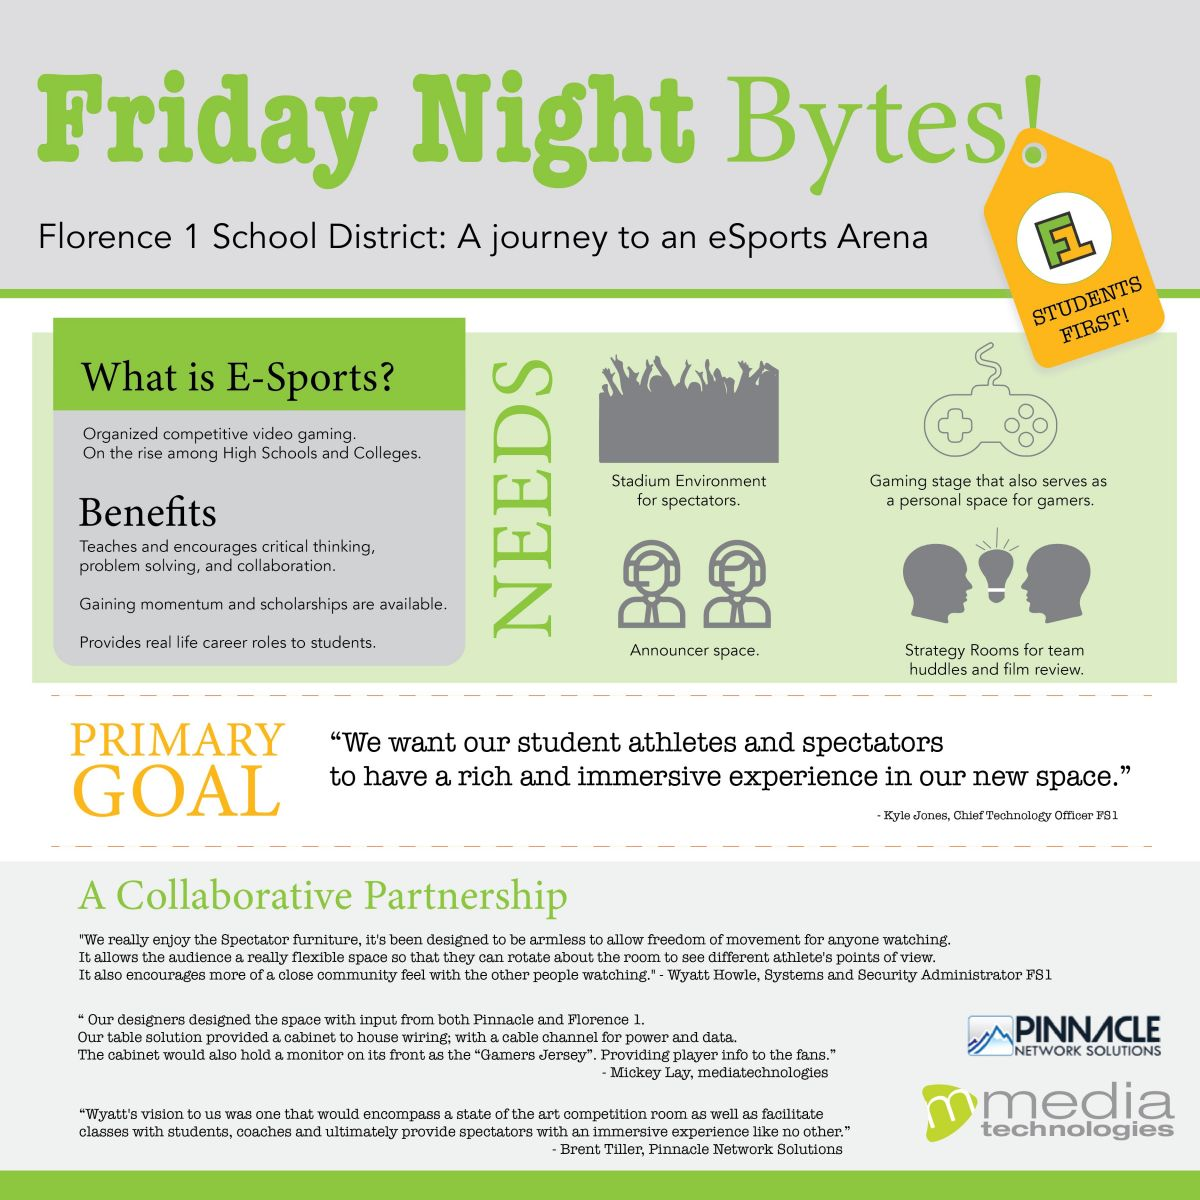 Friday Night Bytes! Florence 1 School District: A journey to an eSports Arena